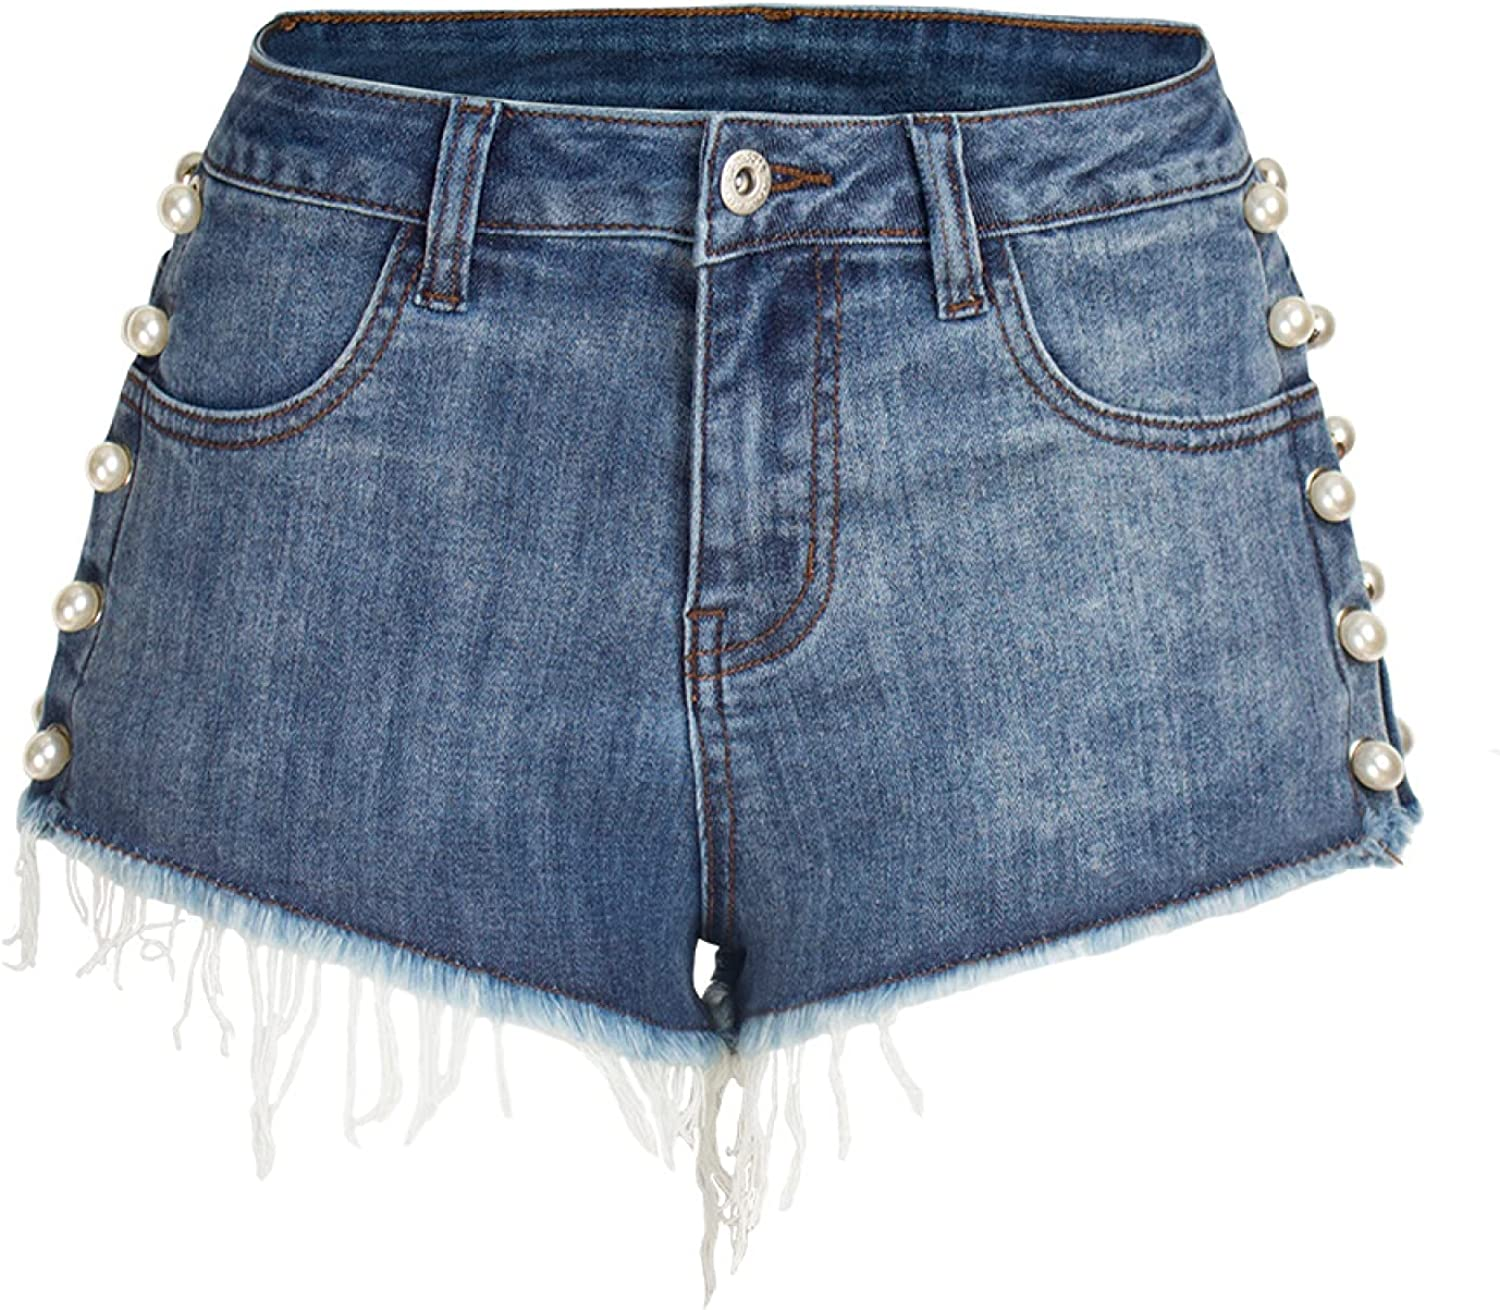 Qinvern Women's Booty Denim Shorts Pearl Rivet Butt Lifting Ripped Washed Distressed